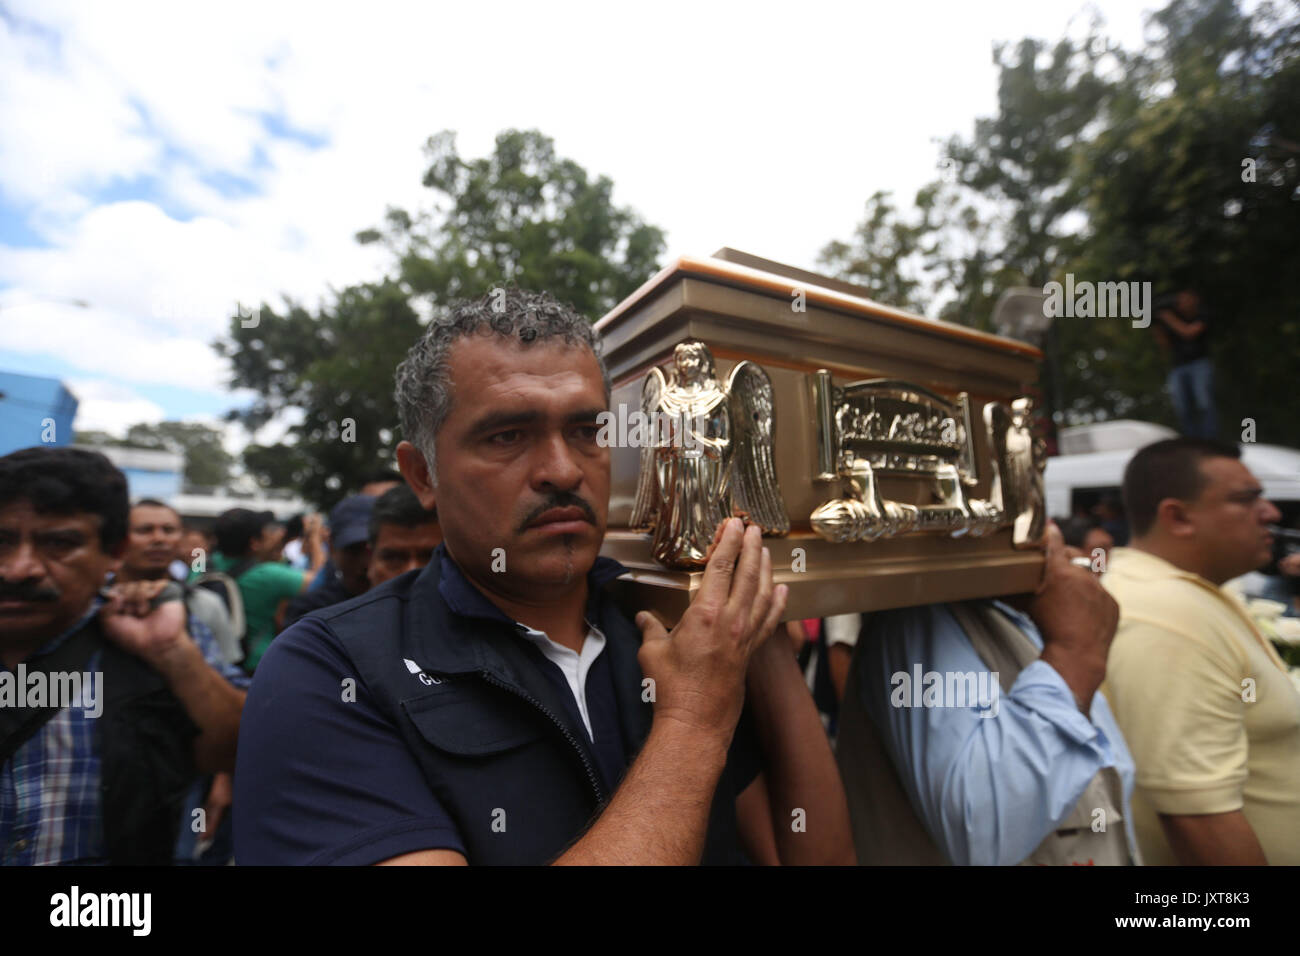 Staff of the Roosevelt Hospital attend the funeral of their colleague Margarito Sucuc in Guatemala City, Guatemala, 17 August 2017. The hospital bid its last farewell to one of its employees who died yesteday along six other people during a shooting perpetrated by a group of gangsters in order to release a member of their group. EFE/Esteban Biba - Stock Image